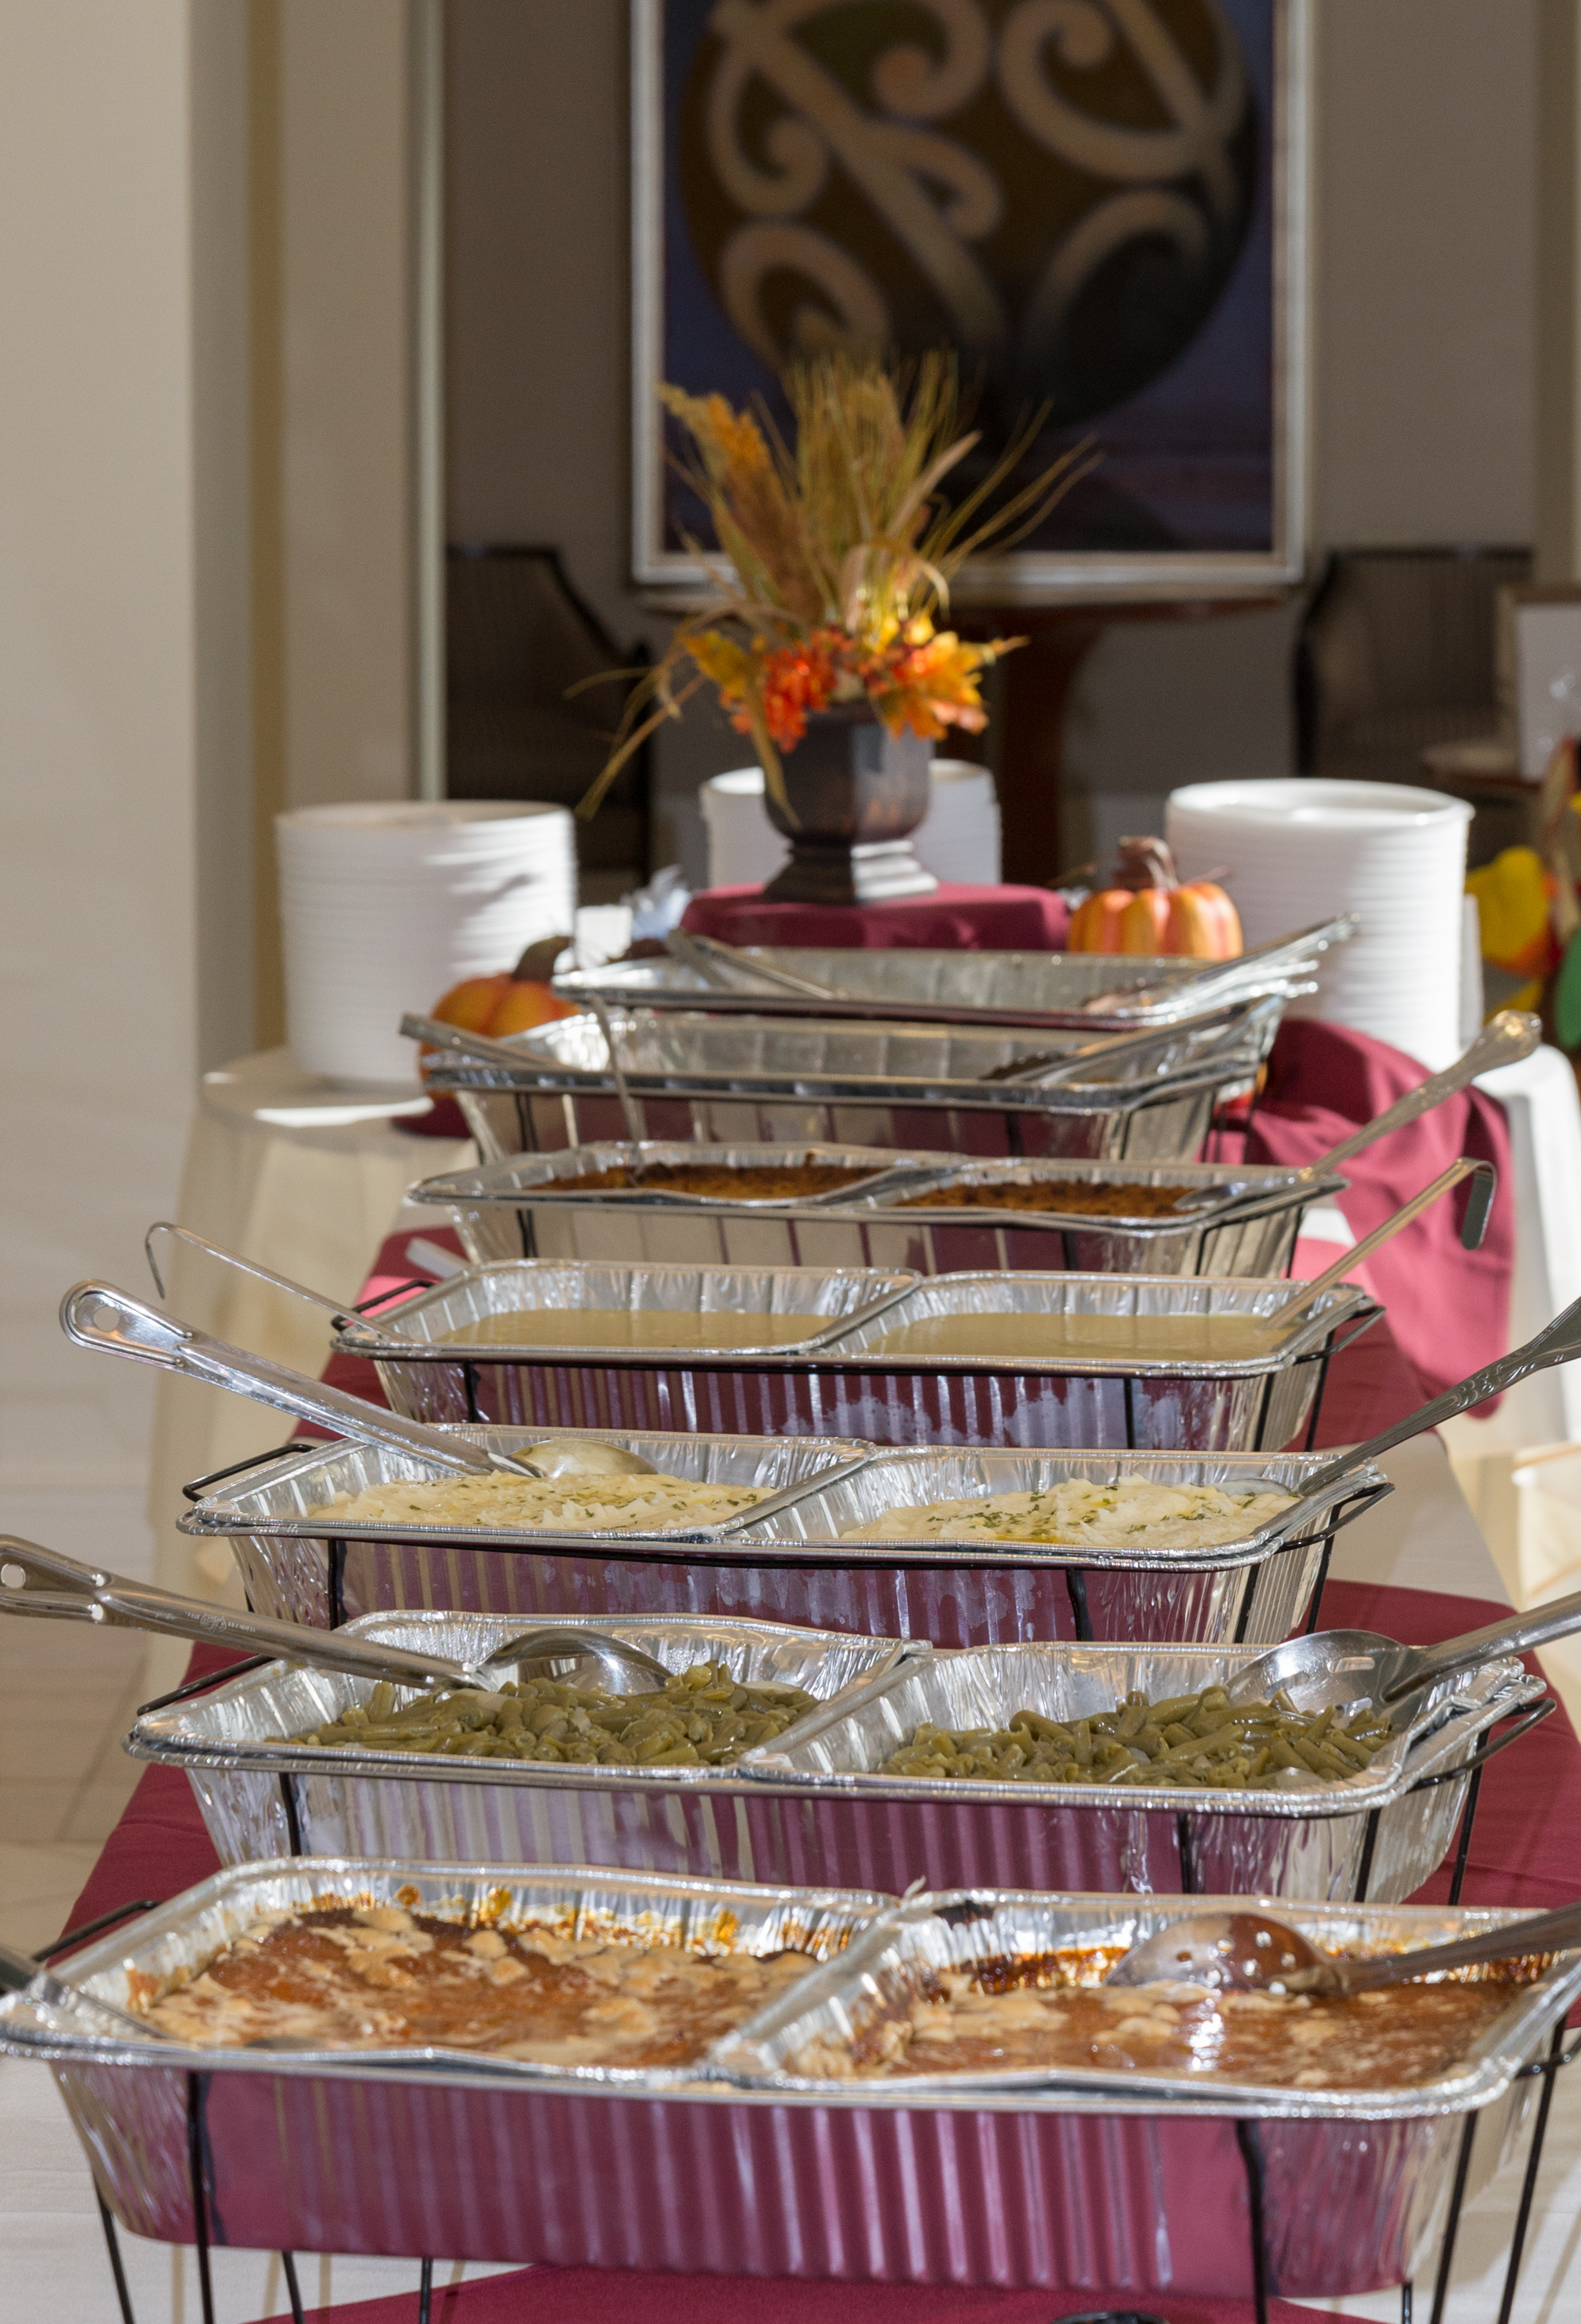 Private Parties Catering By Rodriguez - Catering buffet table setup